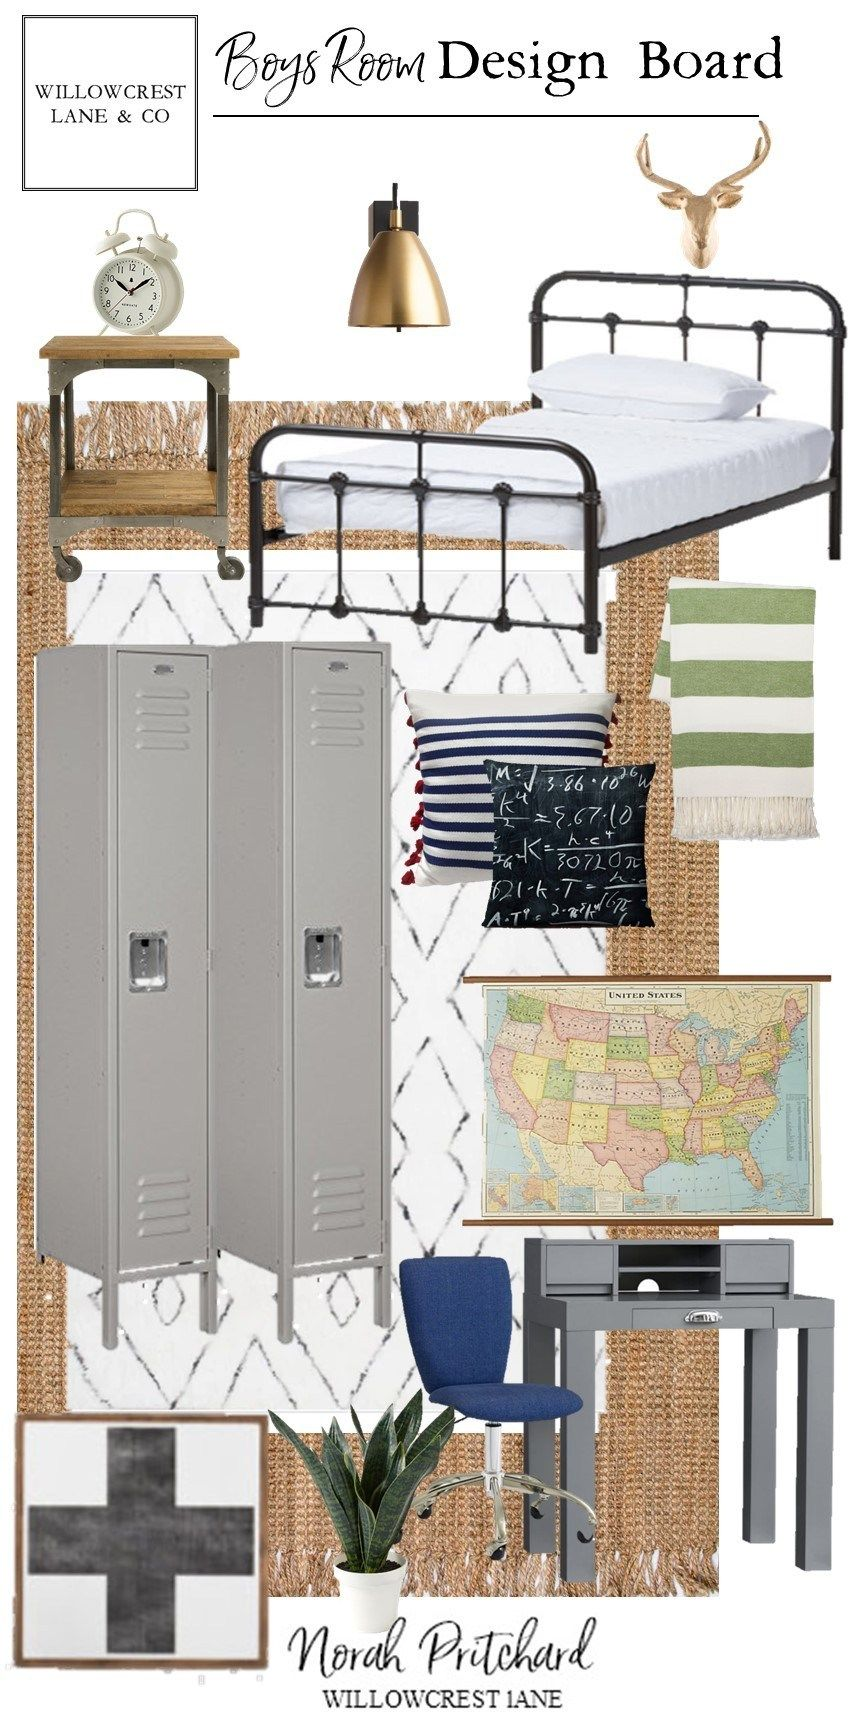 Vintage Industrial Bedroom - Design Board images